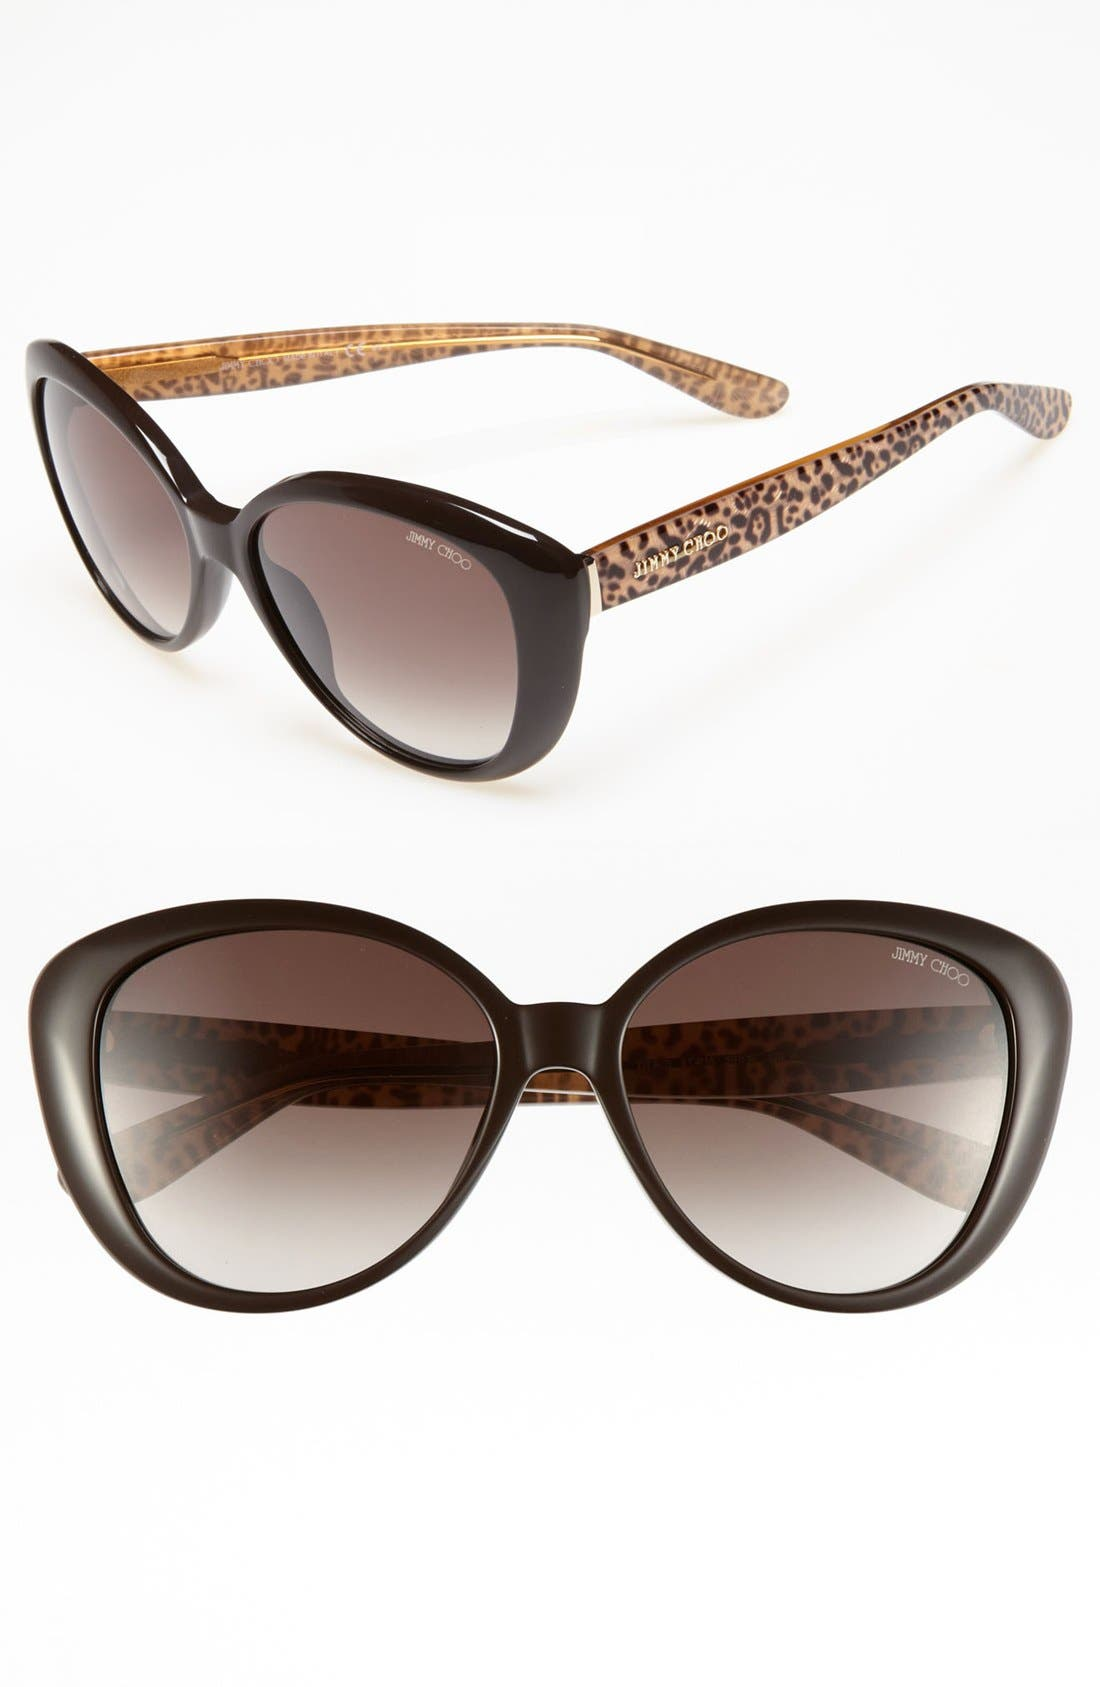 Alternate Image 1 Selected - Jimmy Choo 55mm Sunglasses